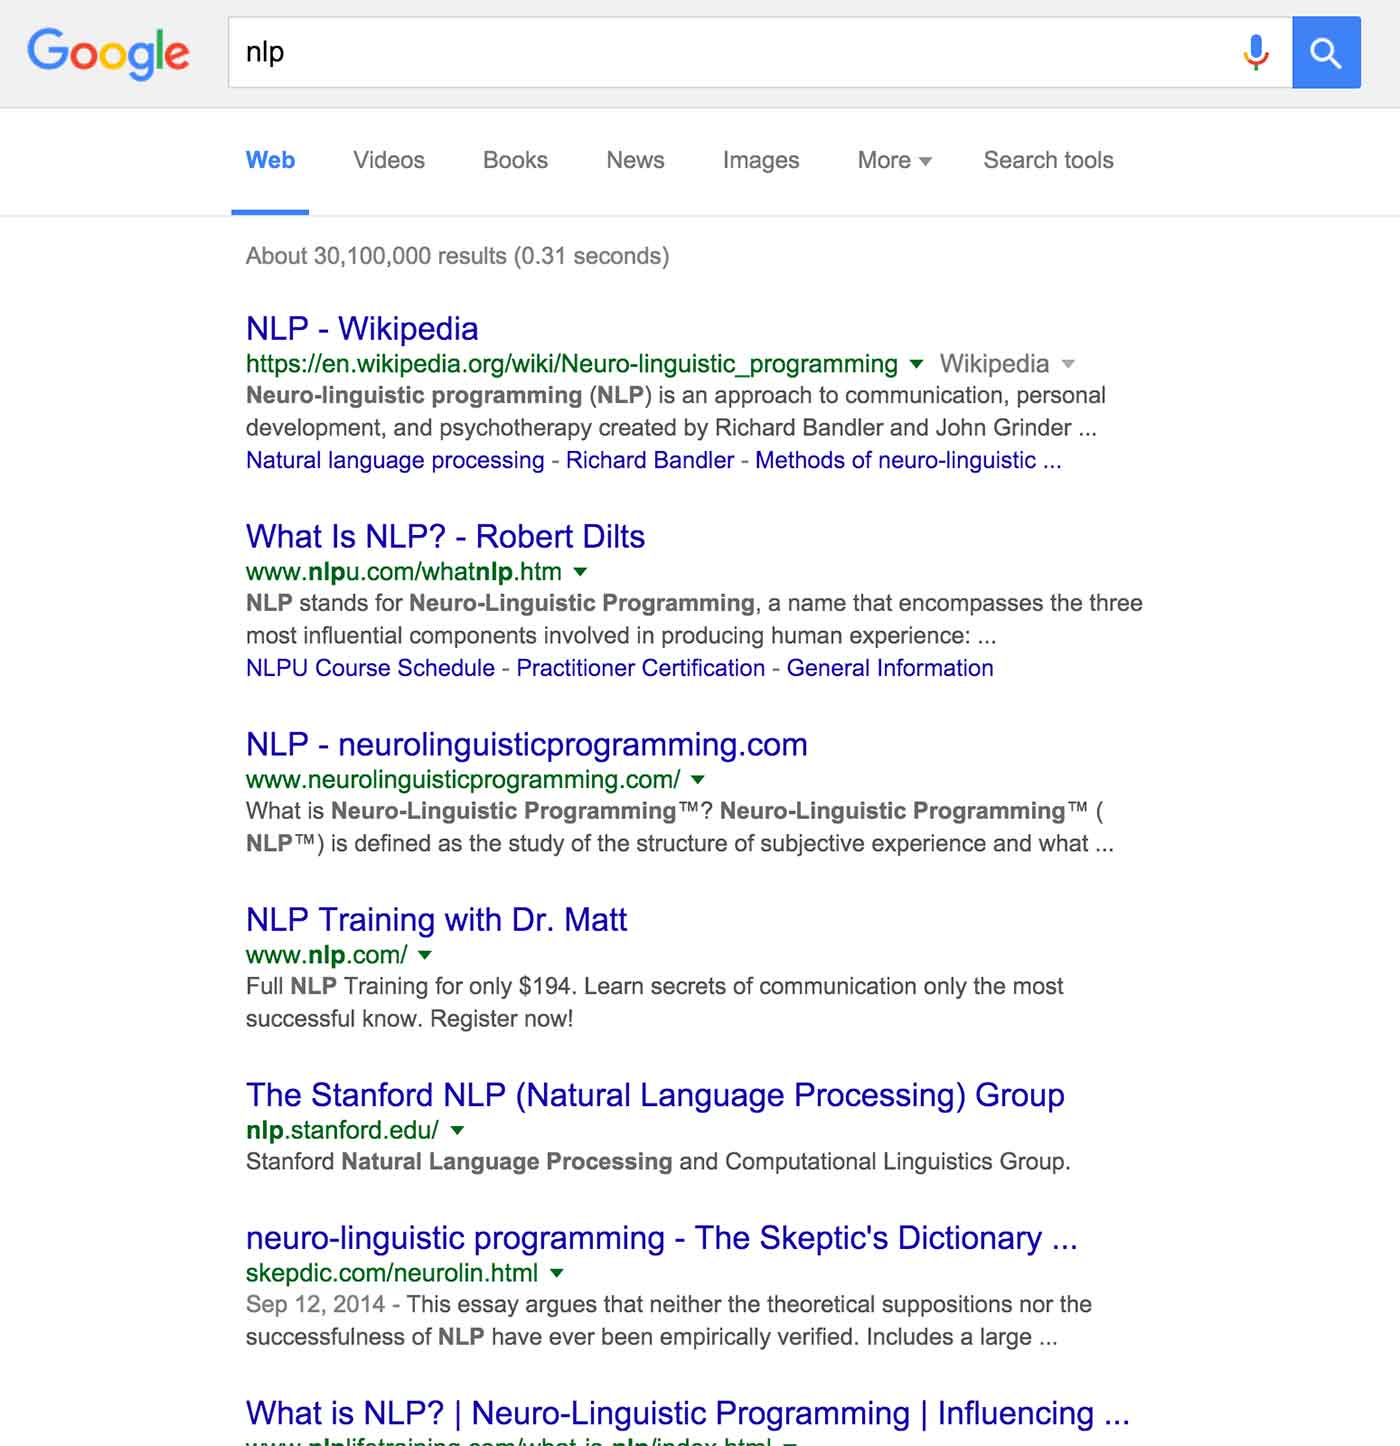 Google search results for NLP.